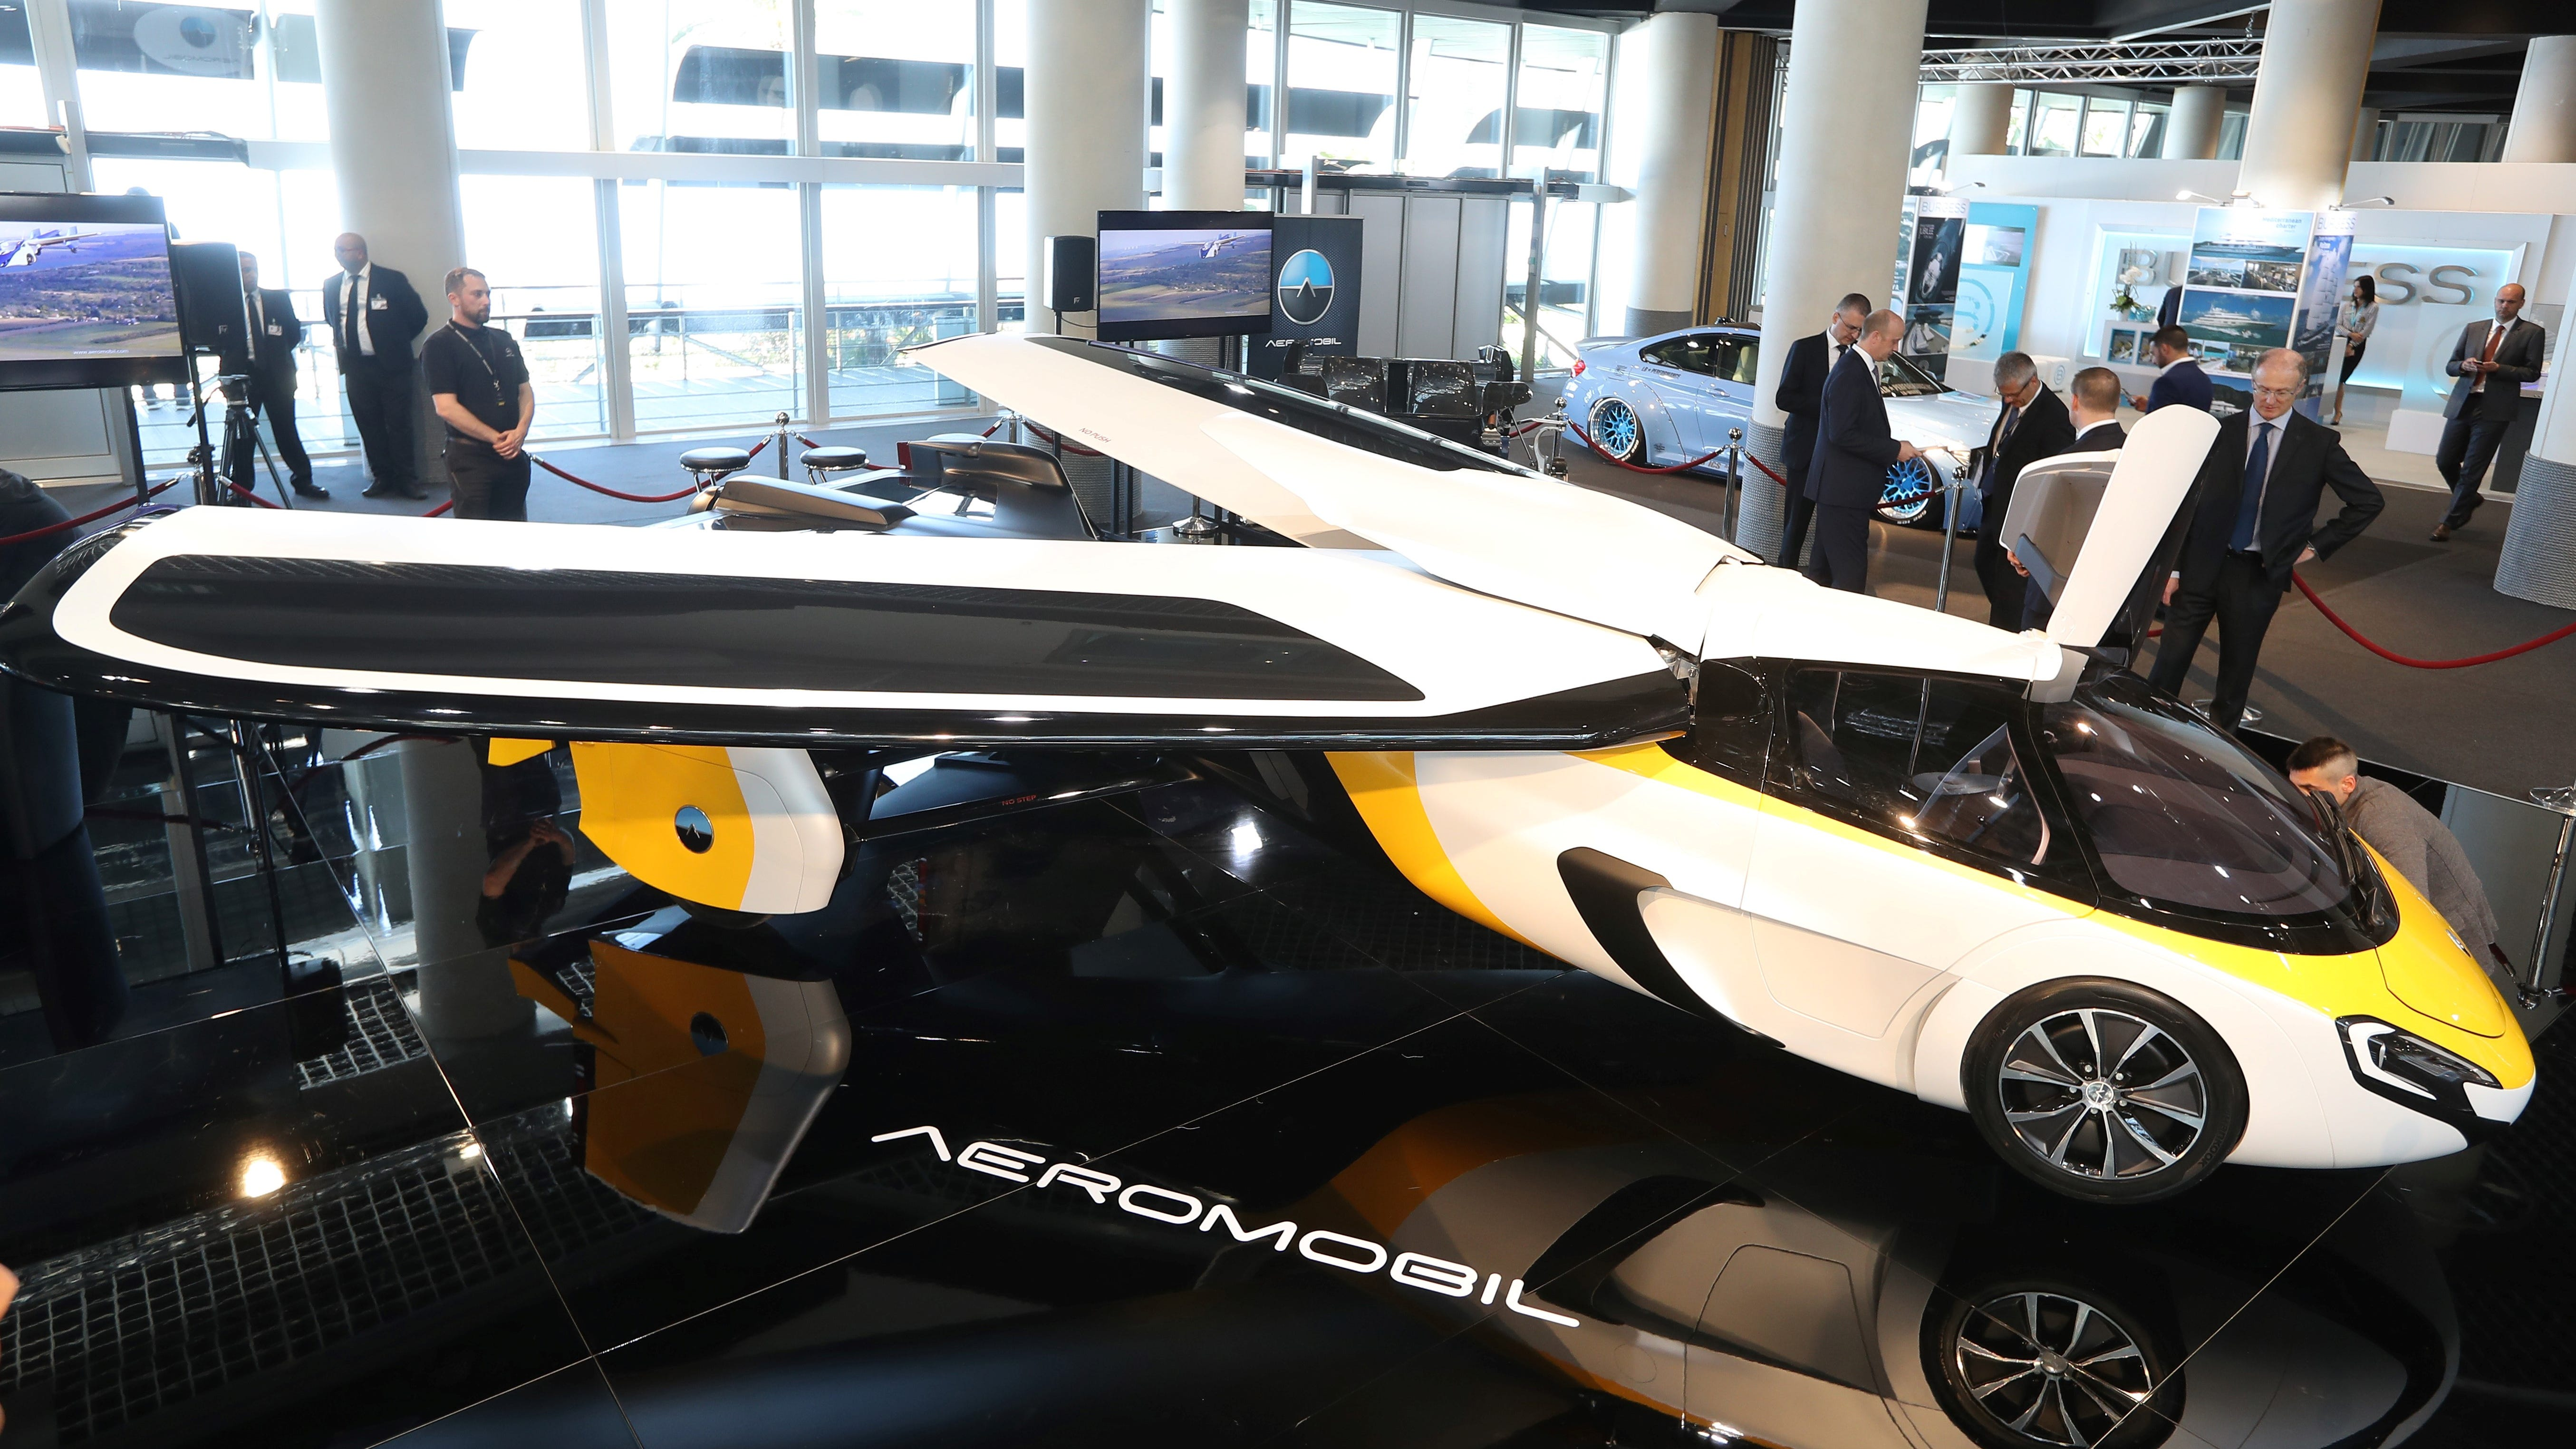 Flying cars could be on the horizon